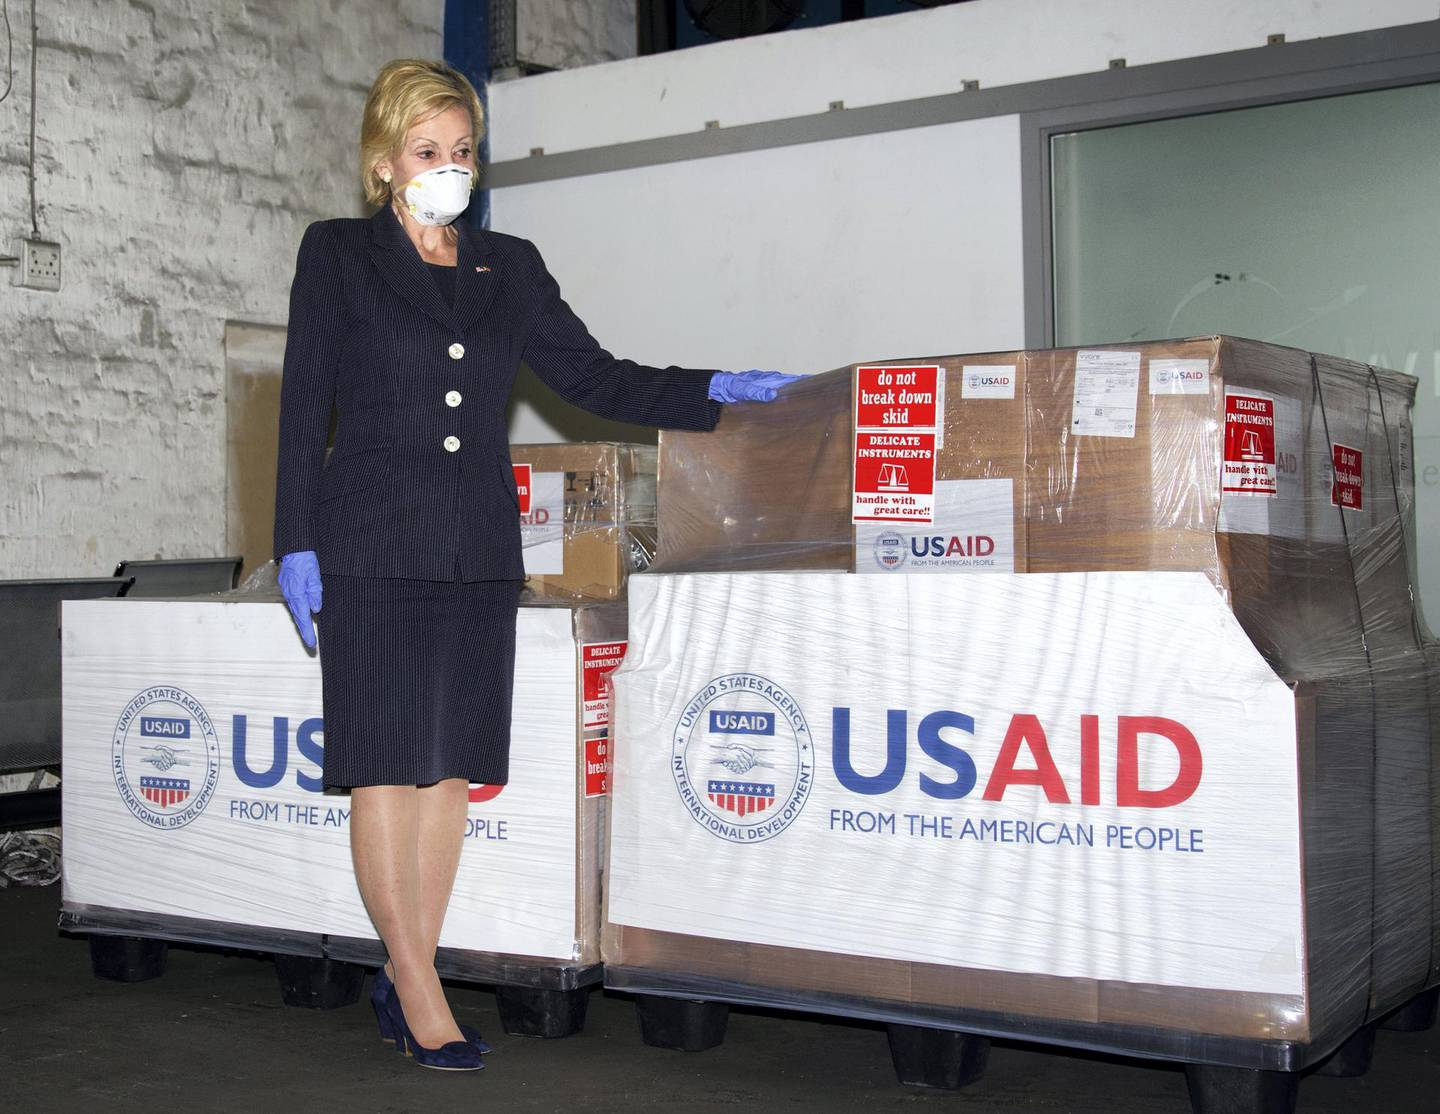 In this photo taken Monday May 11, 2020 at OR Tambo Airport Johannesurg and supplied by the United States Embassy in Pretoria, South Africa, showing U.S. Ambassador to South Africa Lana Marks posing with ventilators donated by the U.S. Government. The United State is donating up to 1000 ventilators to assist with South Africa's national response to COVID-19. (Photo/Leon Kgoedi, United States Embassy South Africa via AP)